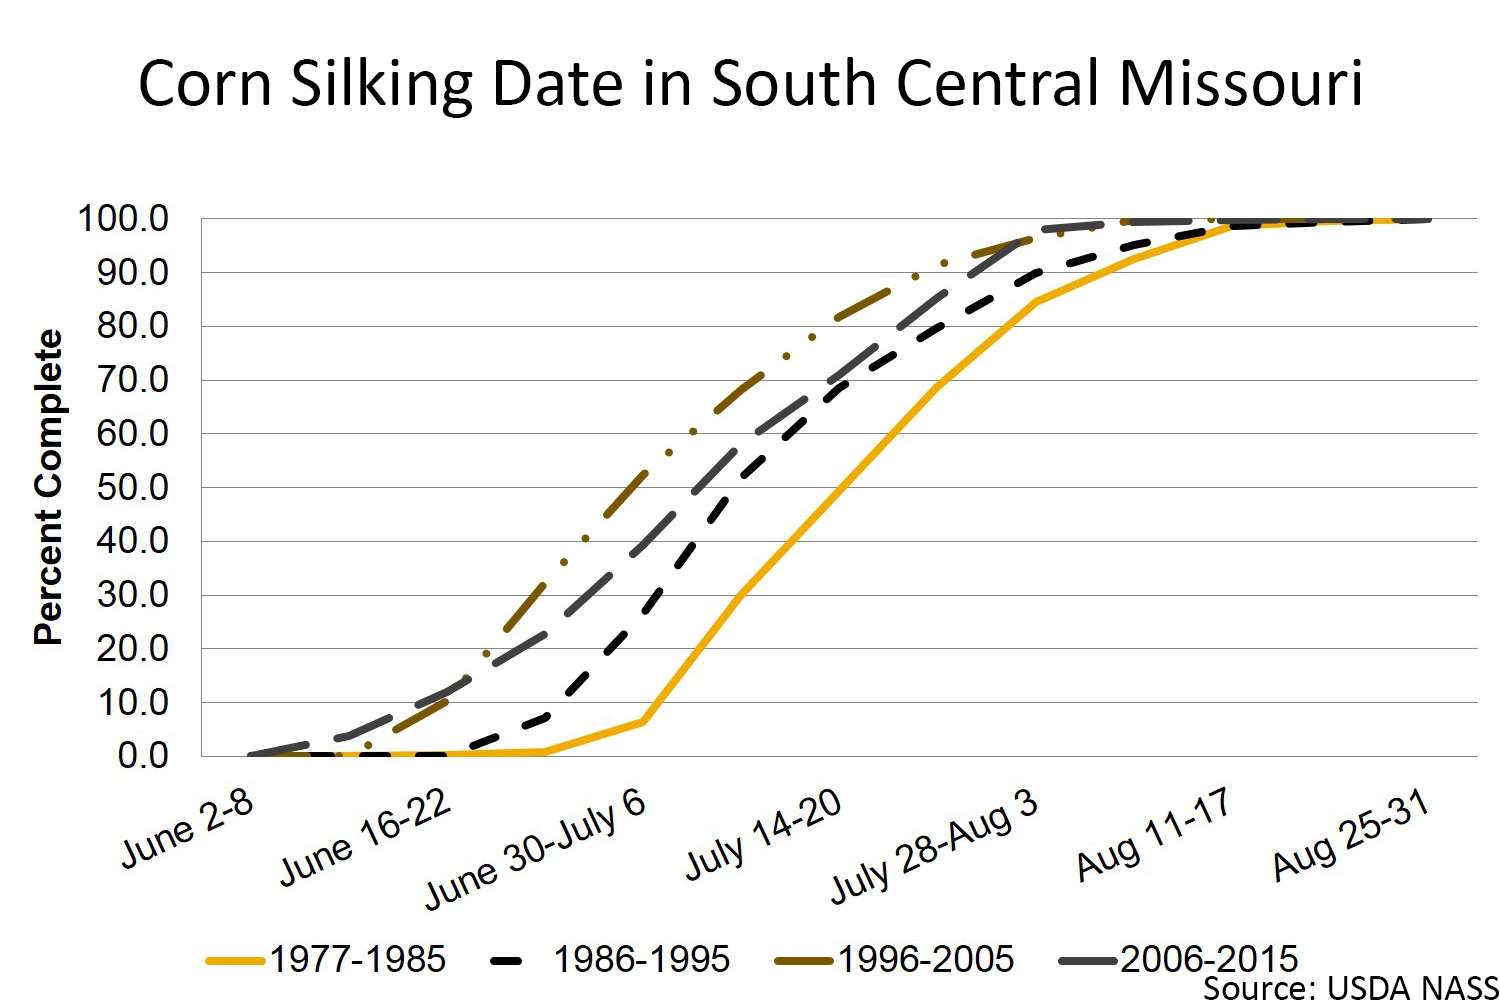 Corn silking date in south central Missouri chart